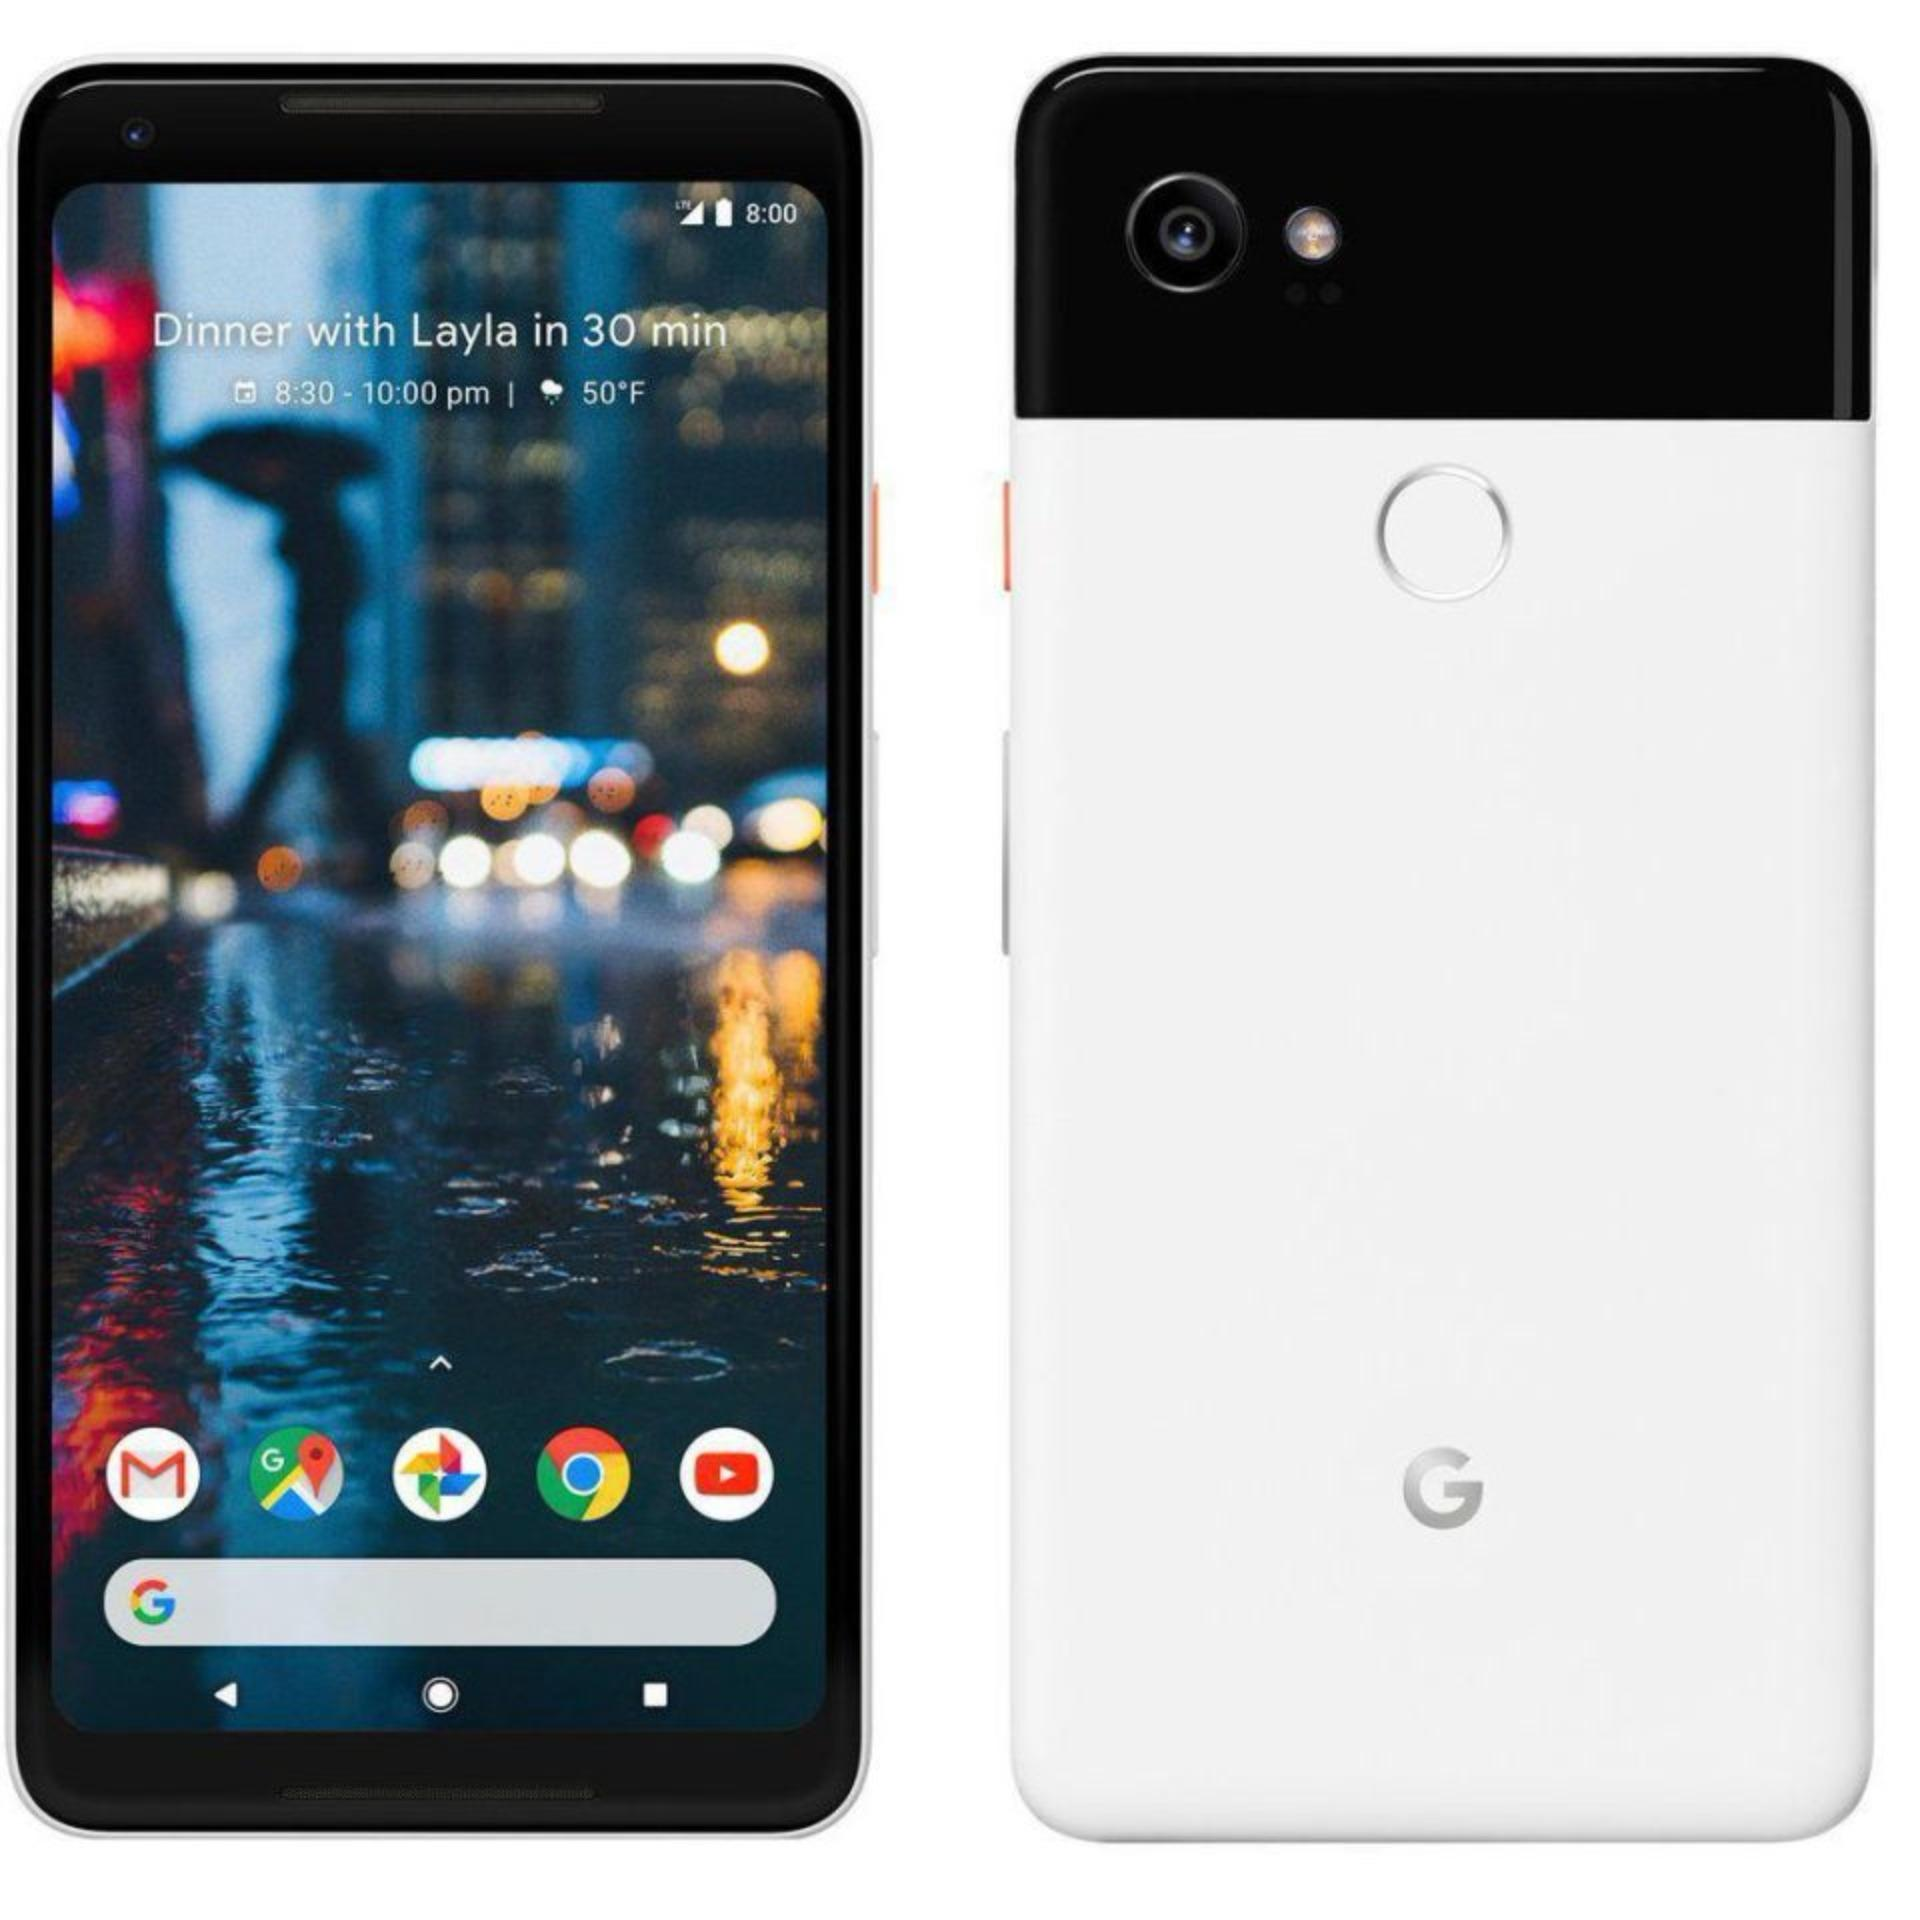 Google Pixel 2 XL 64GB with free gift worth $137